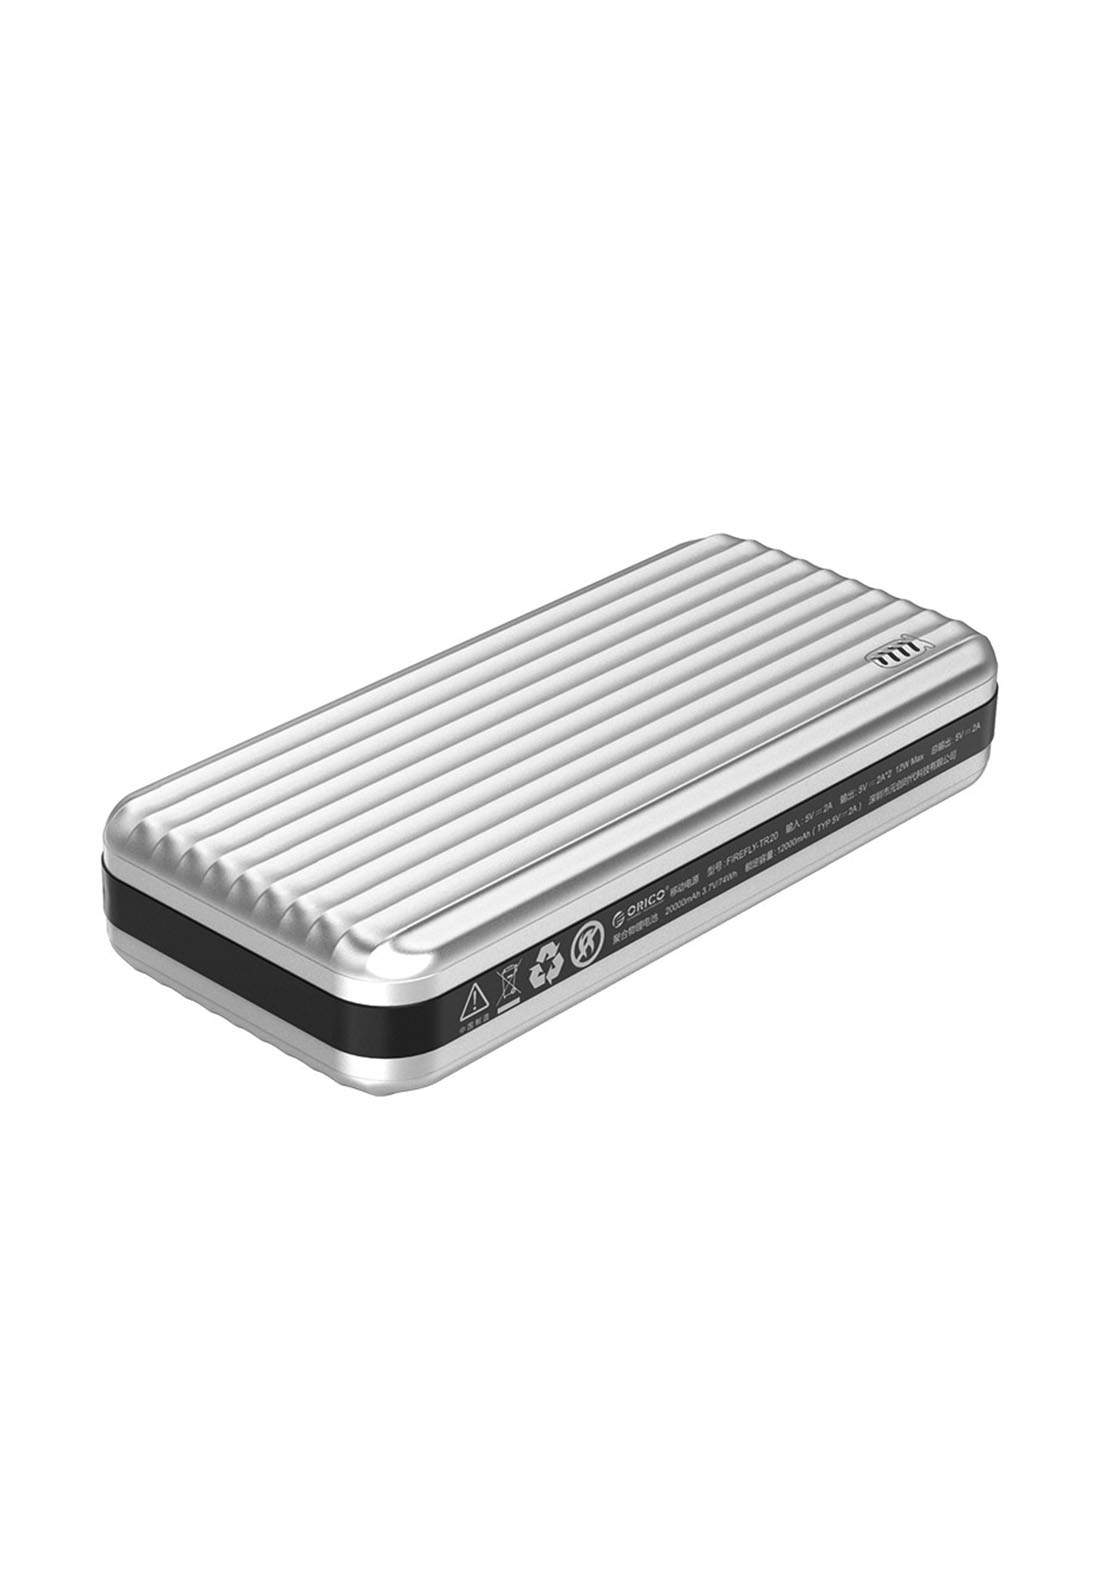 Orico TR20 Portable Power Bank with LED Indicator  - Silver شاحن محمول